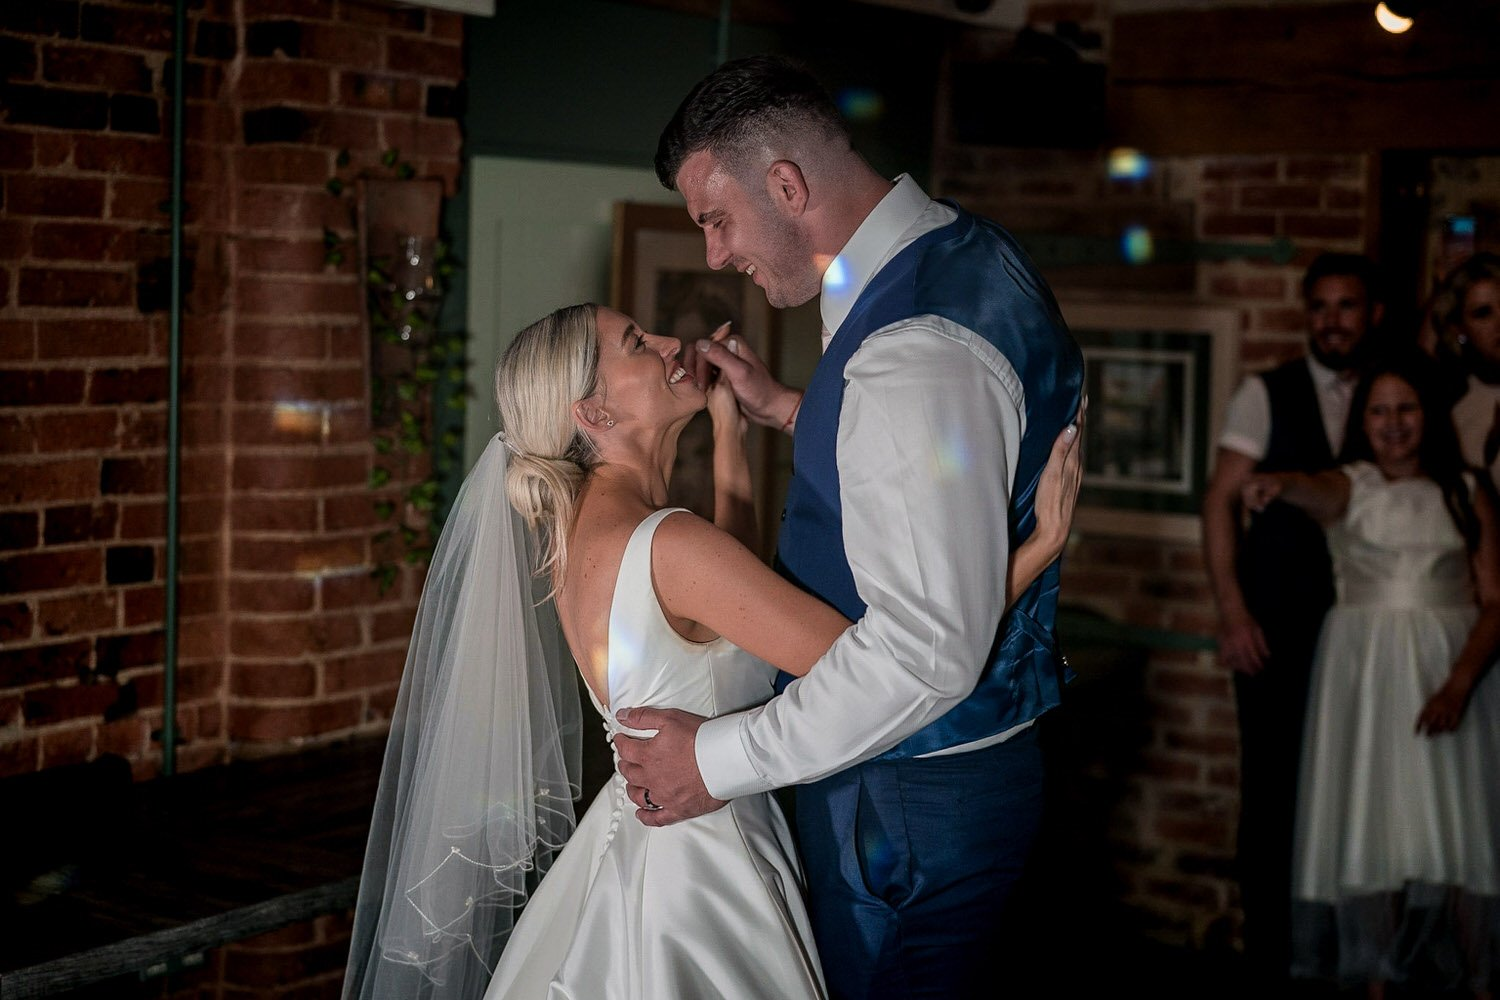 The Waterfront Market Harborough Weddings Photography groom and bride dancing during first dance hand in hand